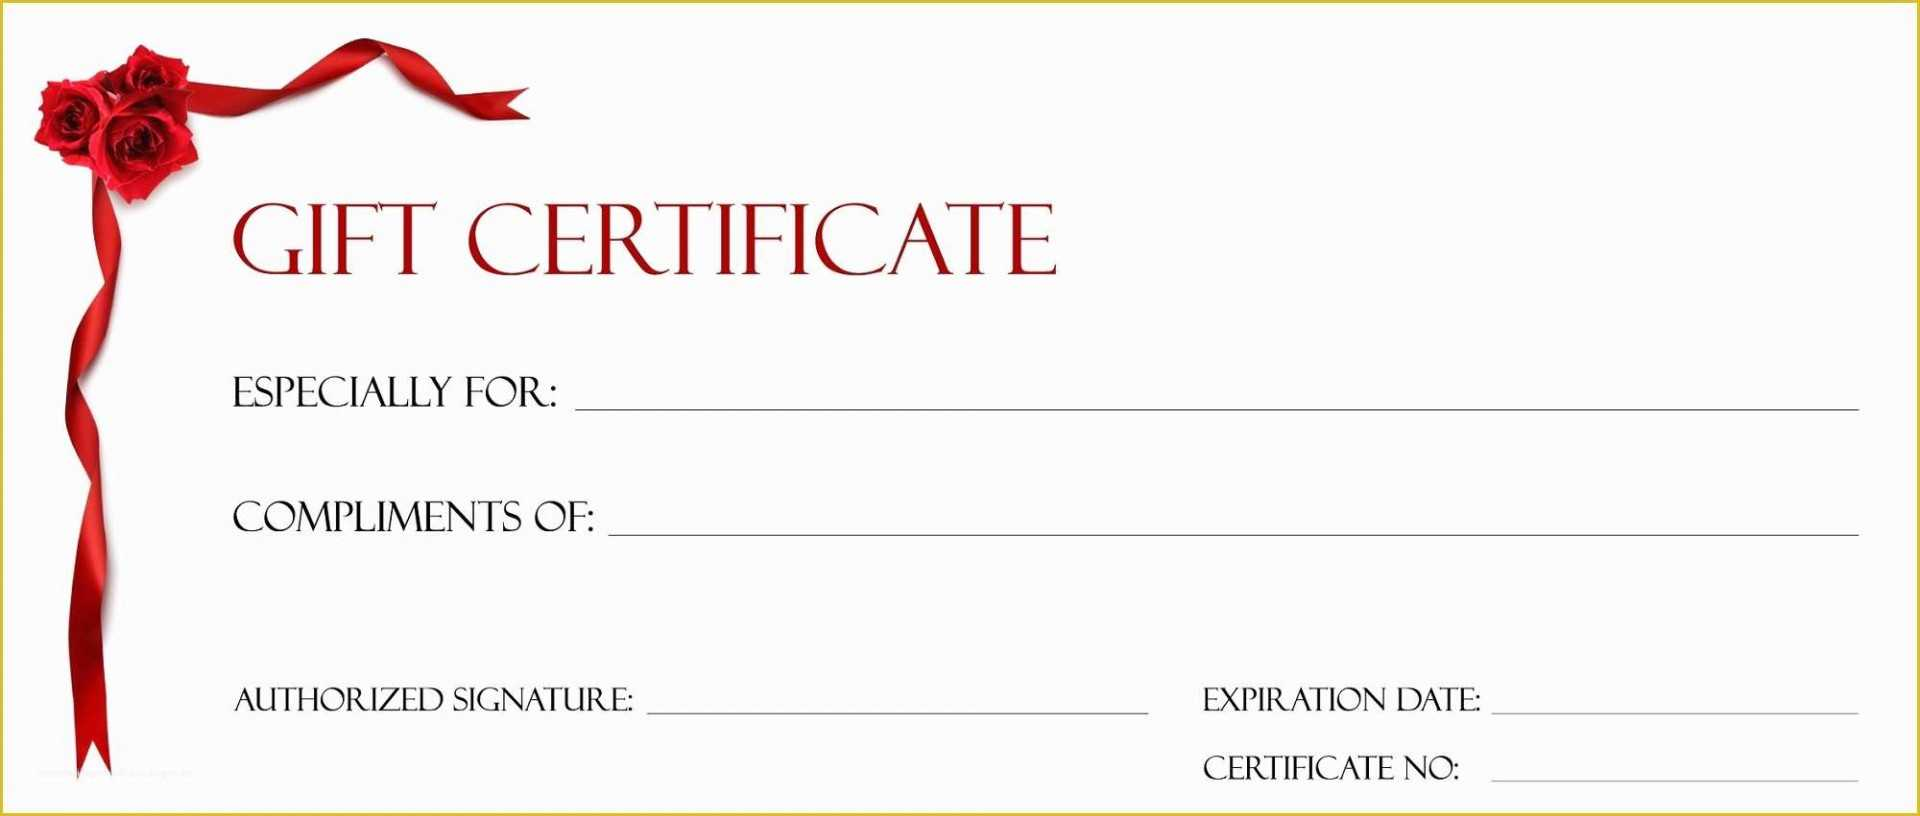 037 Free Download Gift Certificate Template Word Of Voucher In Microsoft Gift Certificate Template Free Word